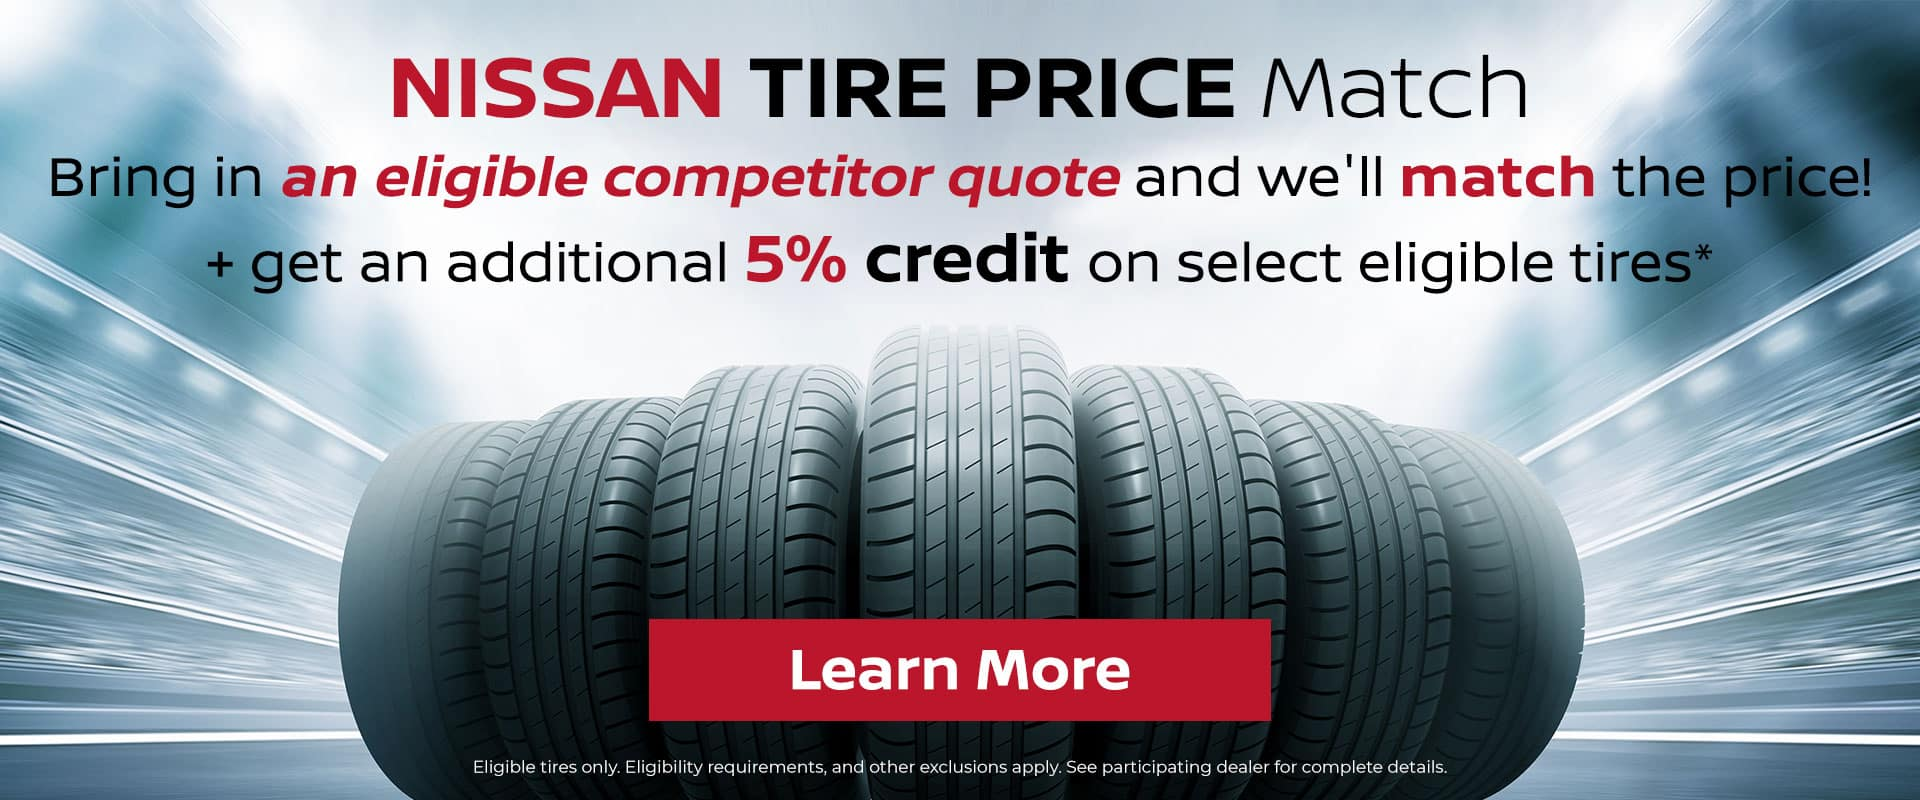 Nissan Of Greenville Tire Price Match Guarantee